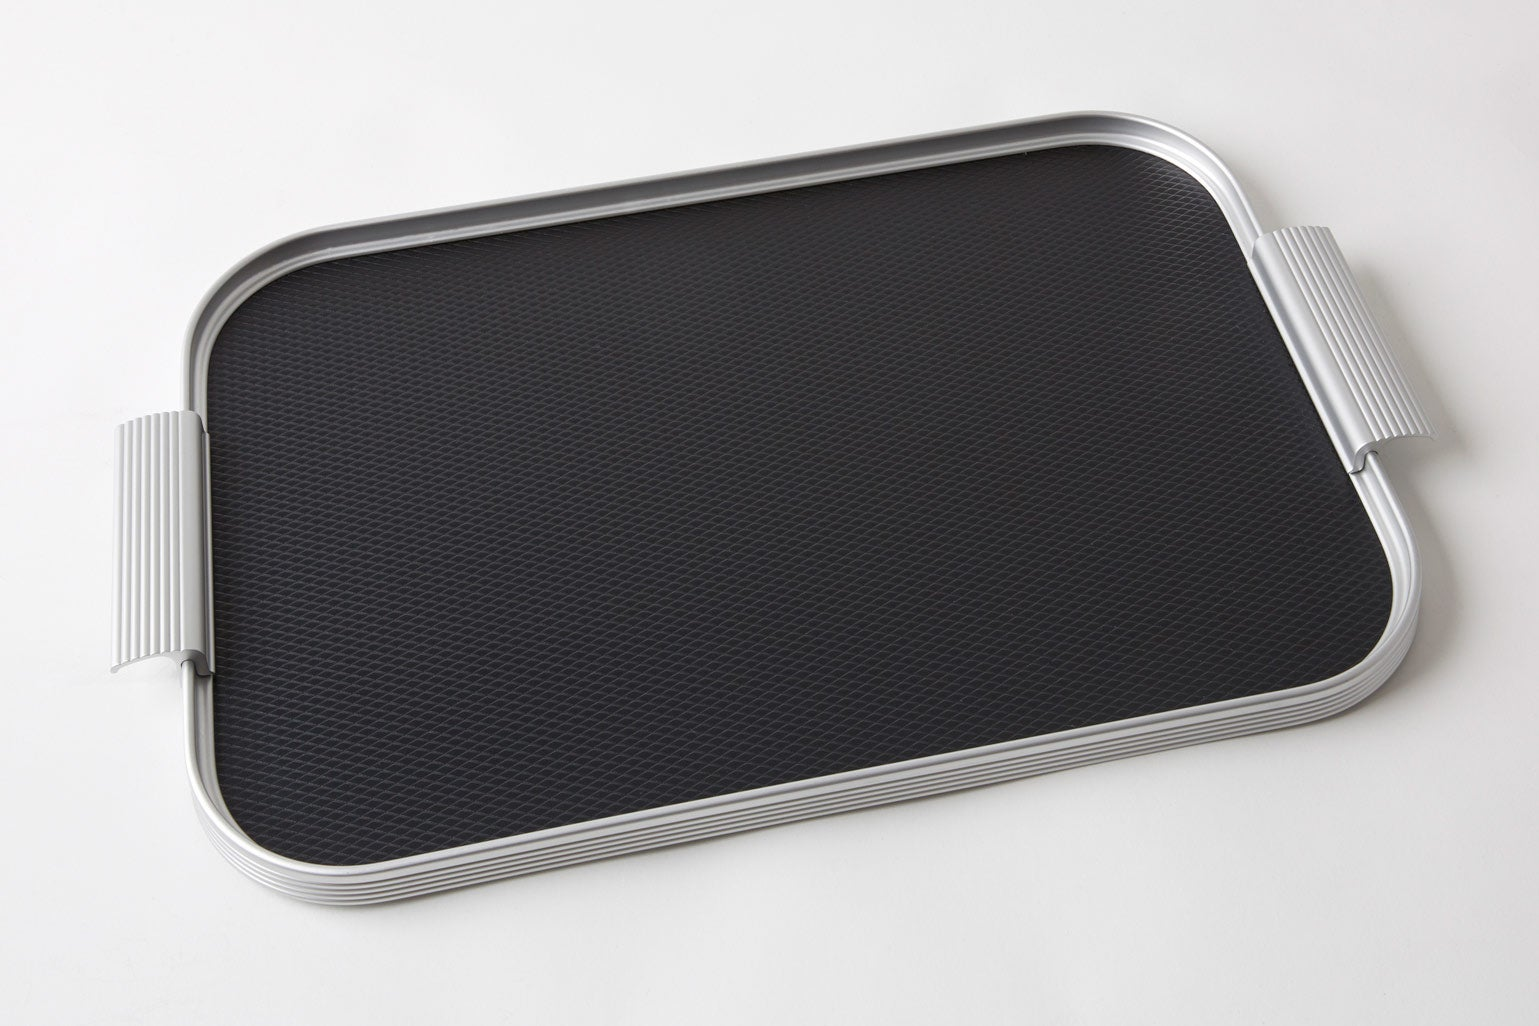 Image of Kaymet Tray Black/Silver